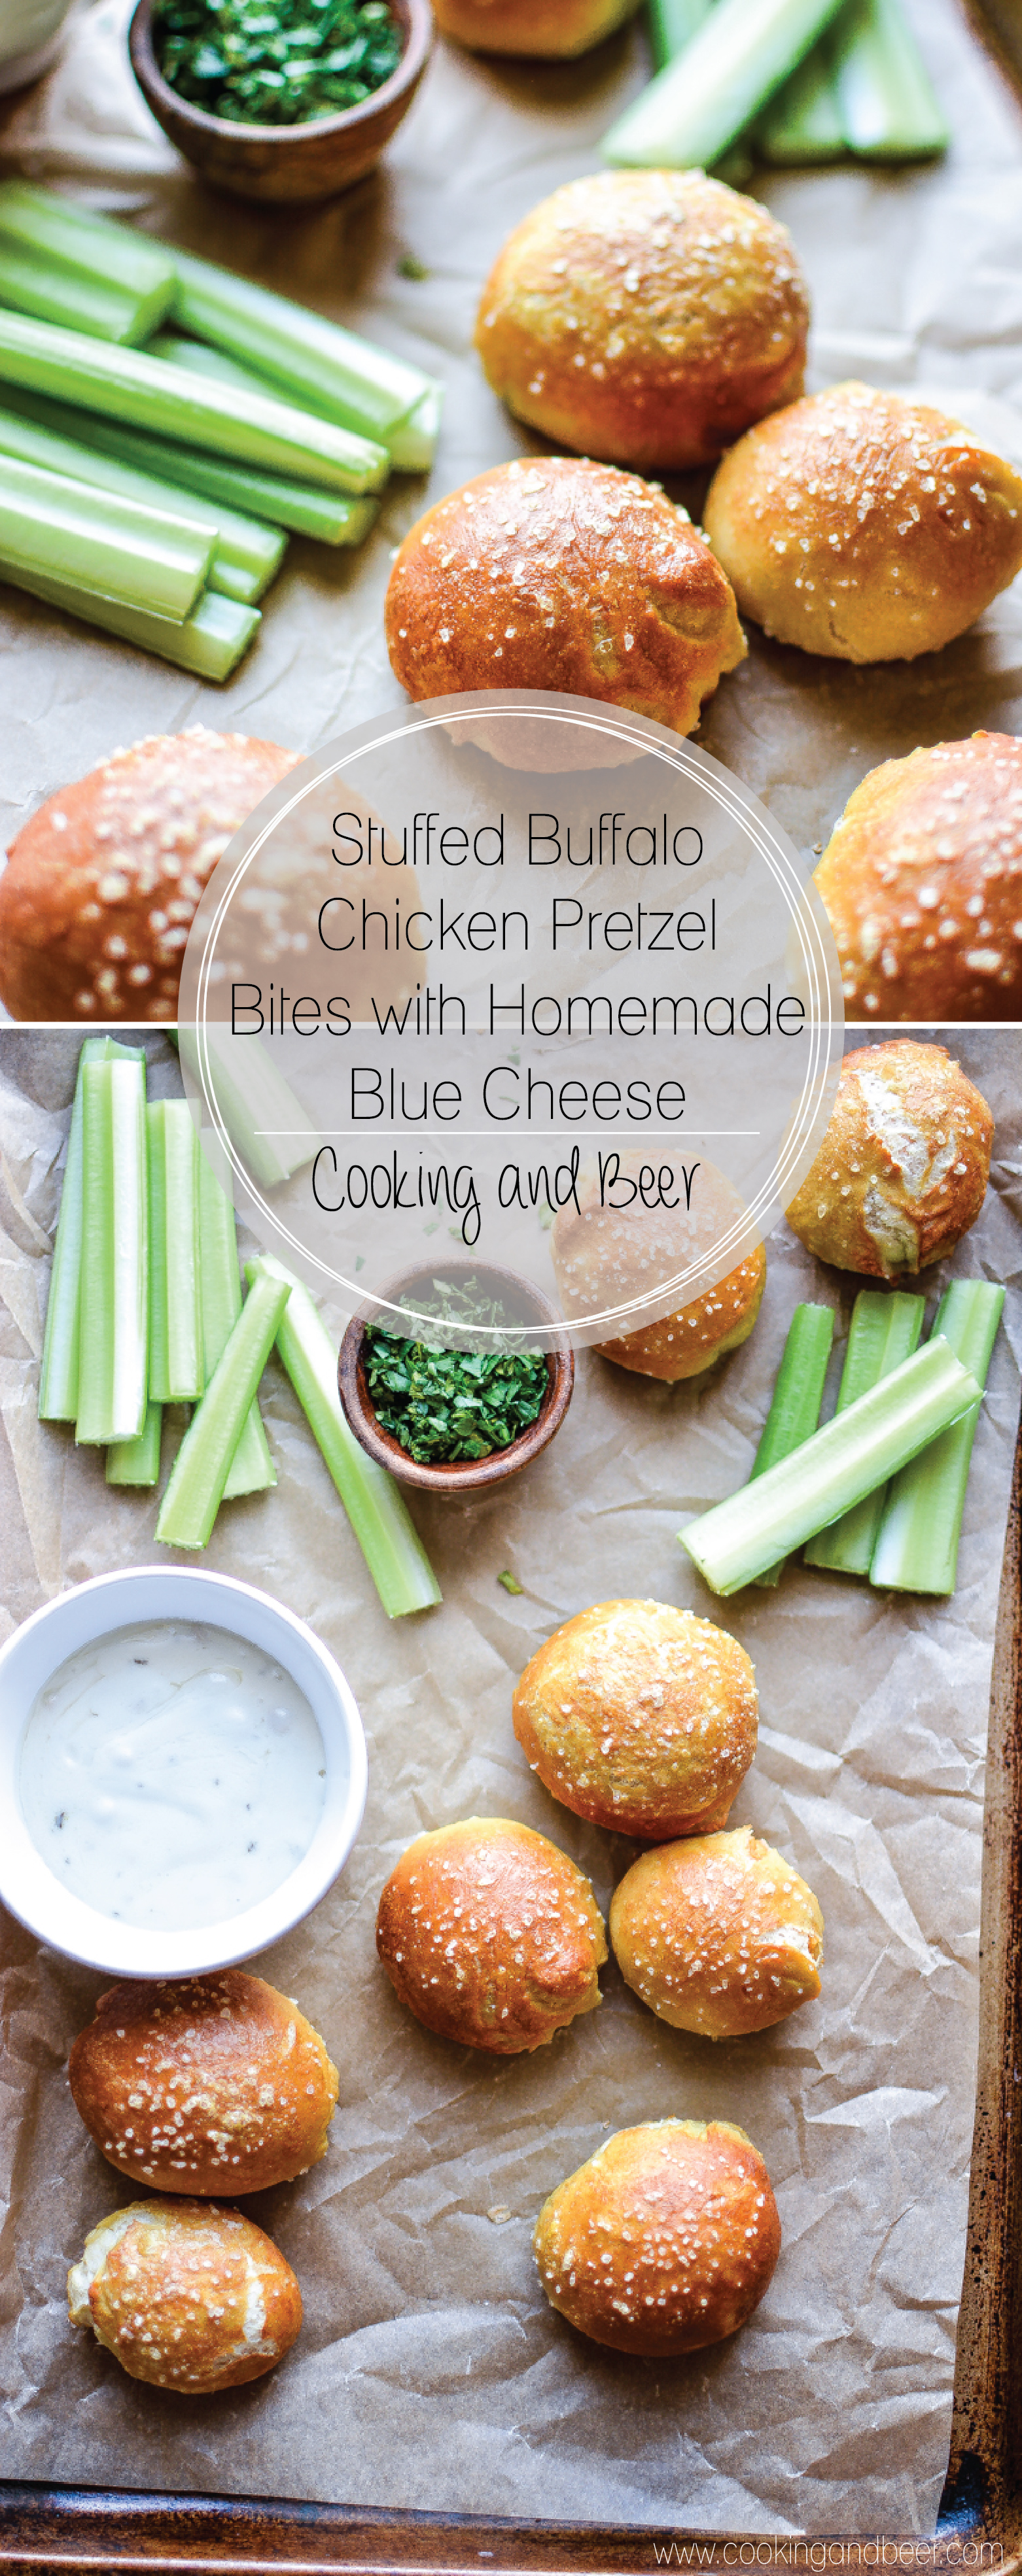 Stuffed Buffalo Chicken Pretzel Bites with Homemade Blue Cheese: a bite-sized appetizer recipe that's perfect for game day!